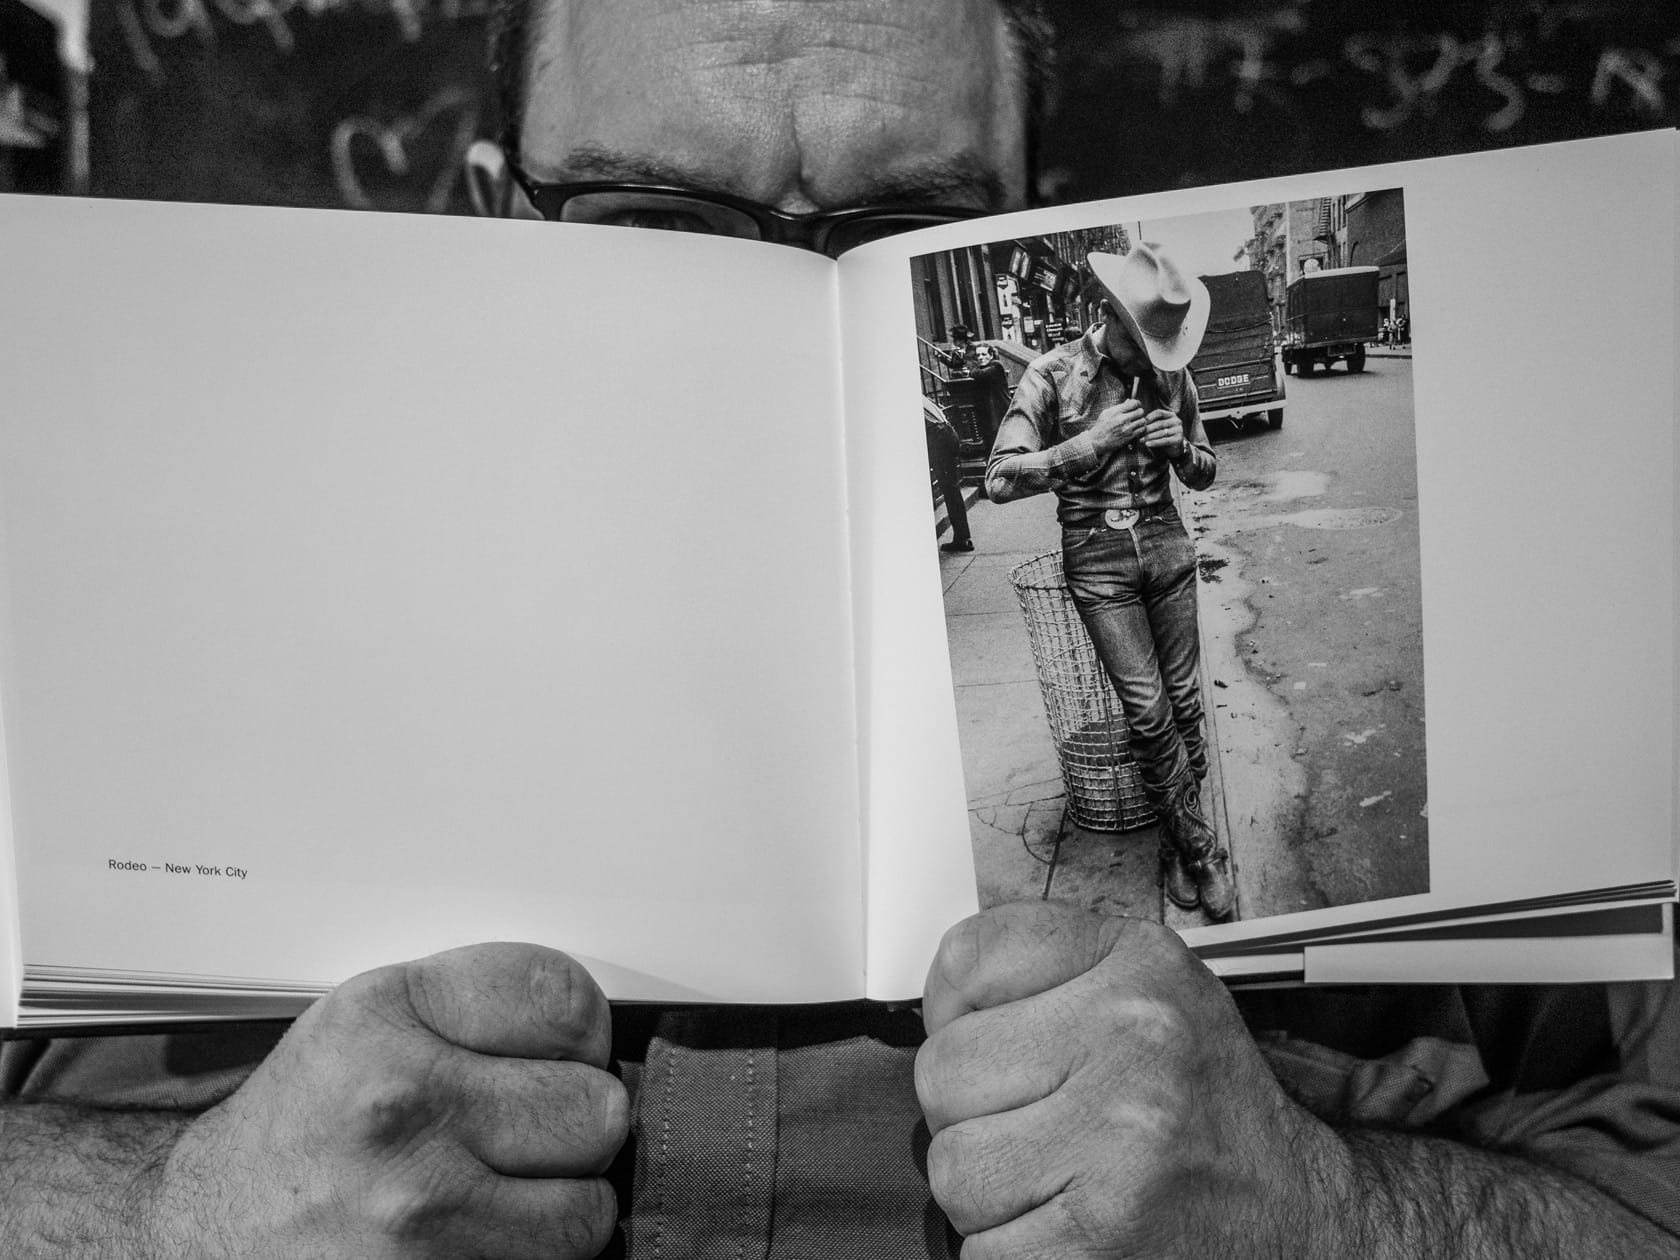 """""""The Americans"""" by Robert Frank inside page 3"""